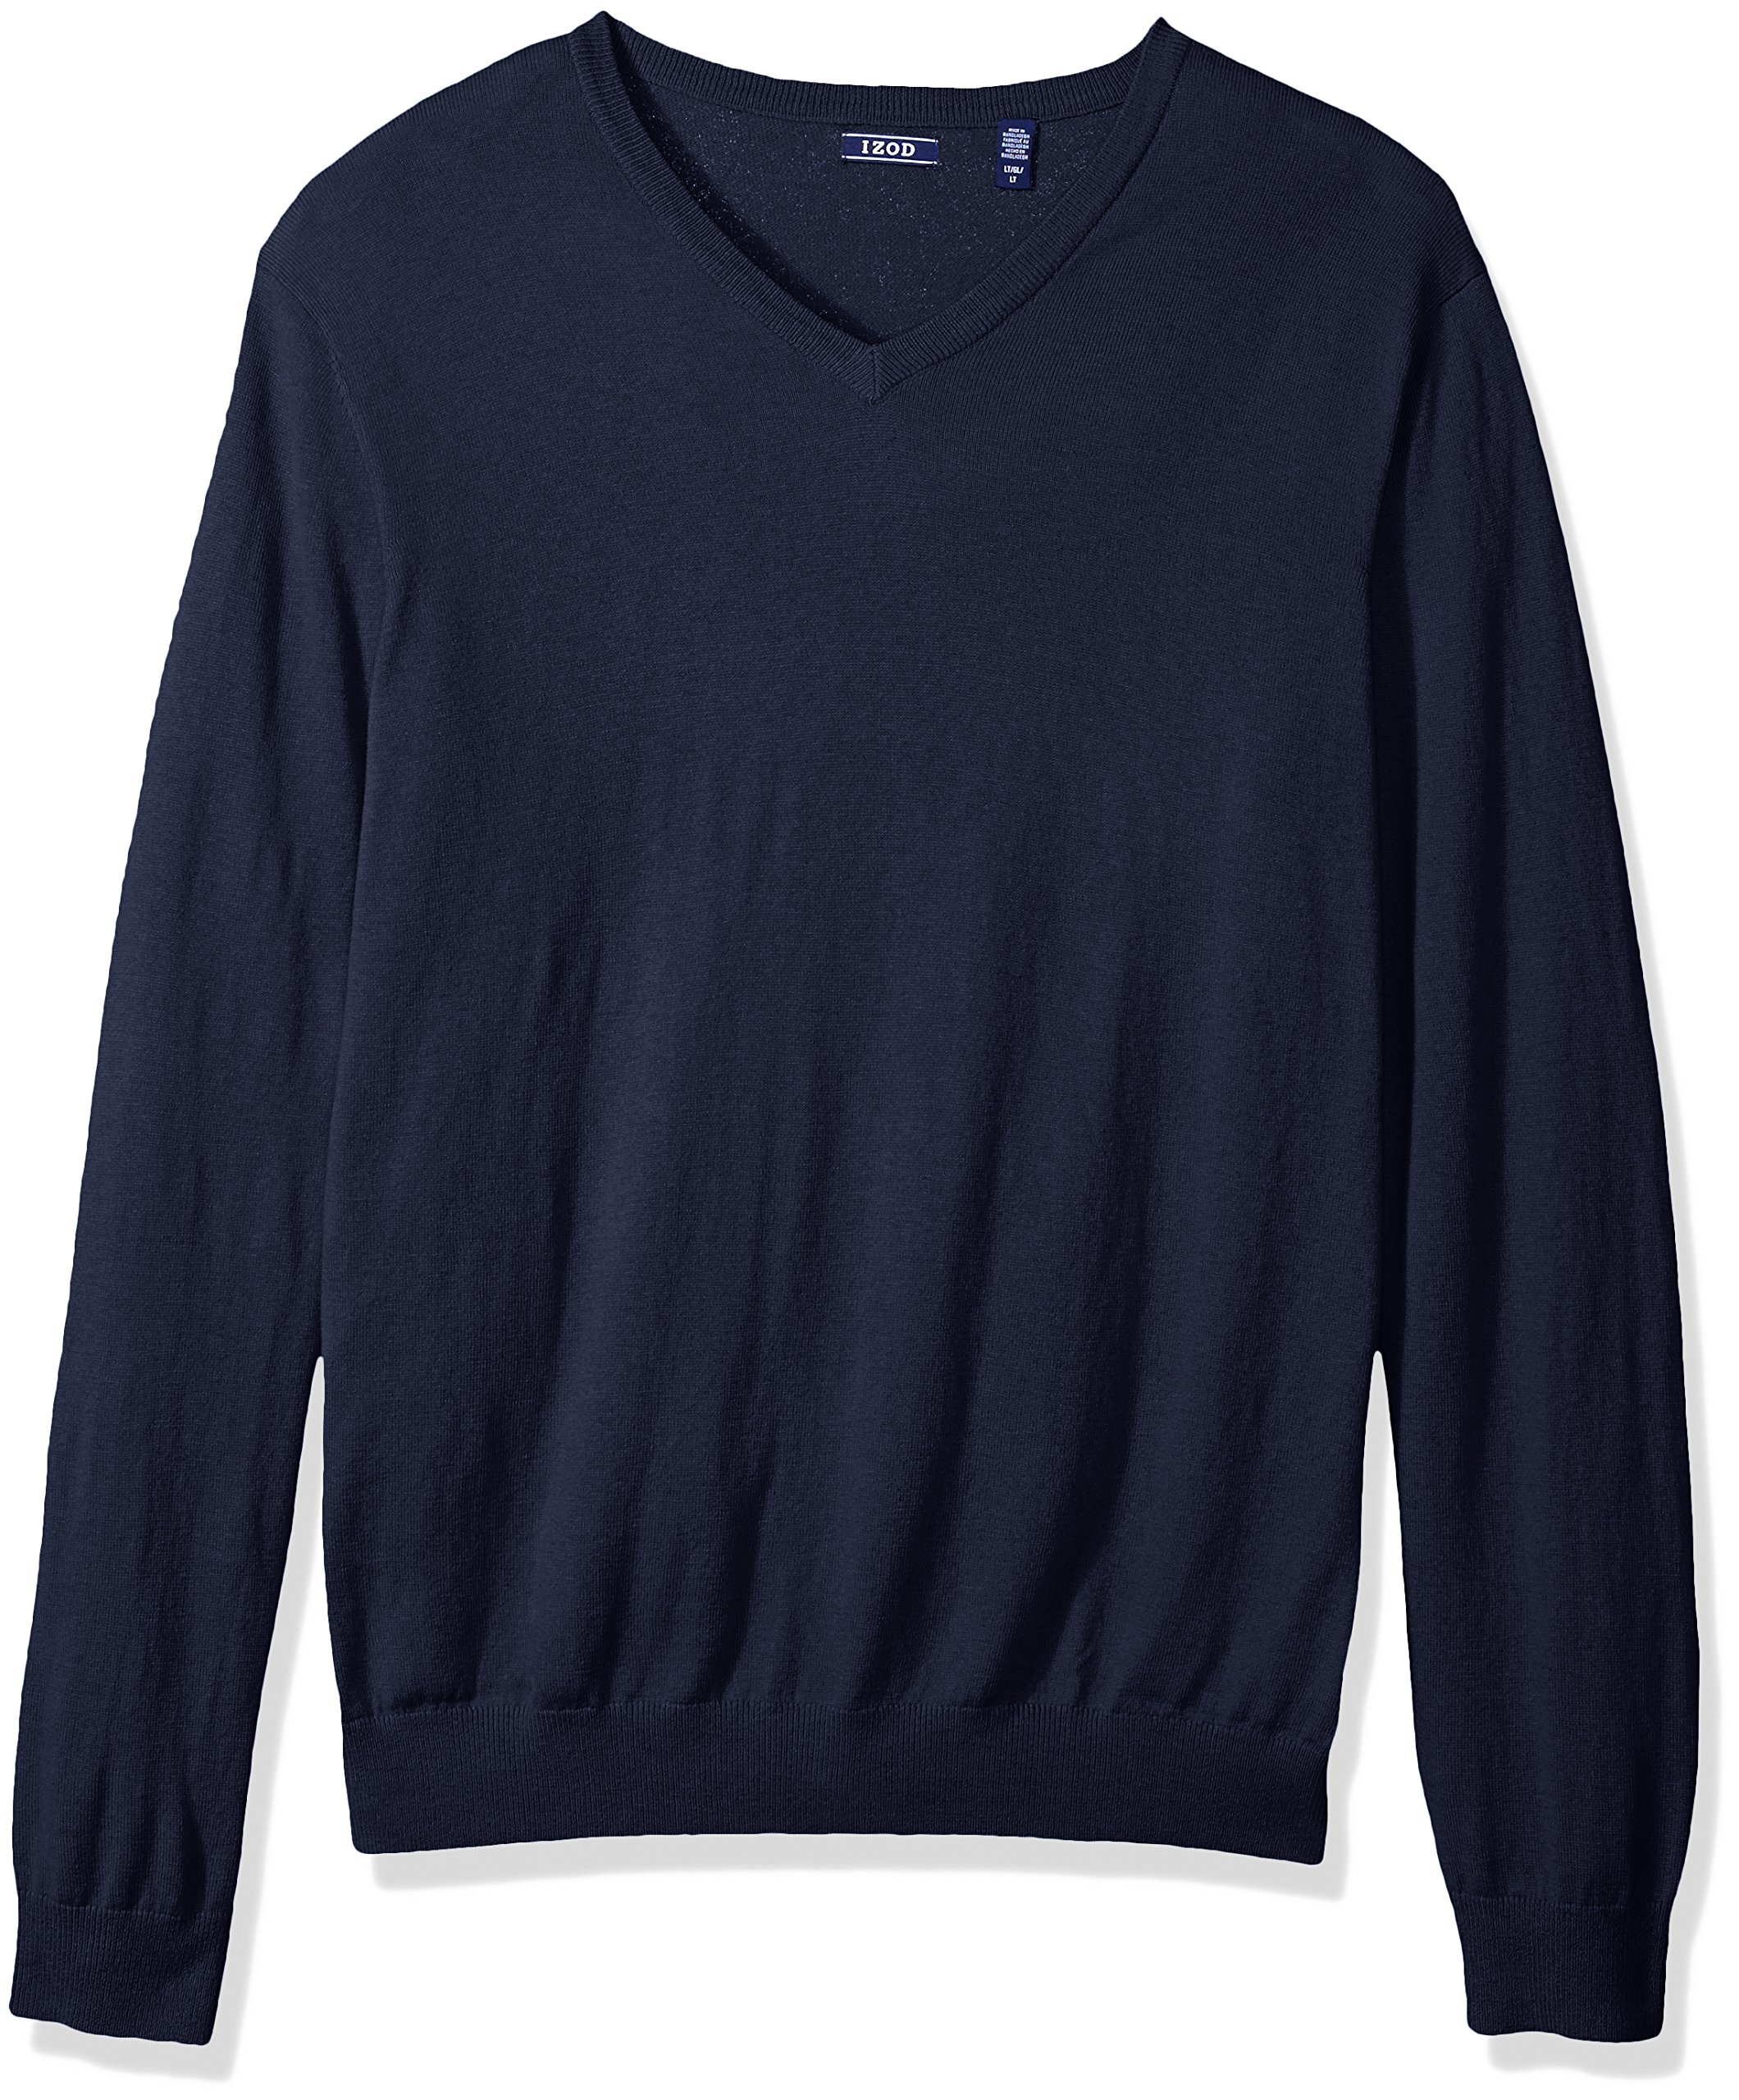 IZOD Men's Big and Tall Fine Gauge Solid V-Neck Sweater, Peacoat, Large Tall